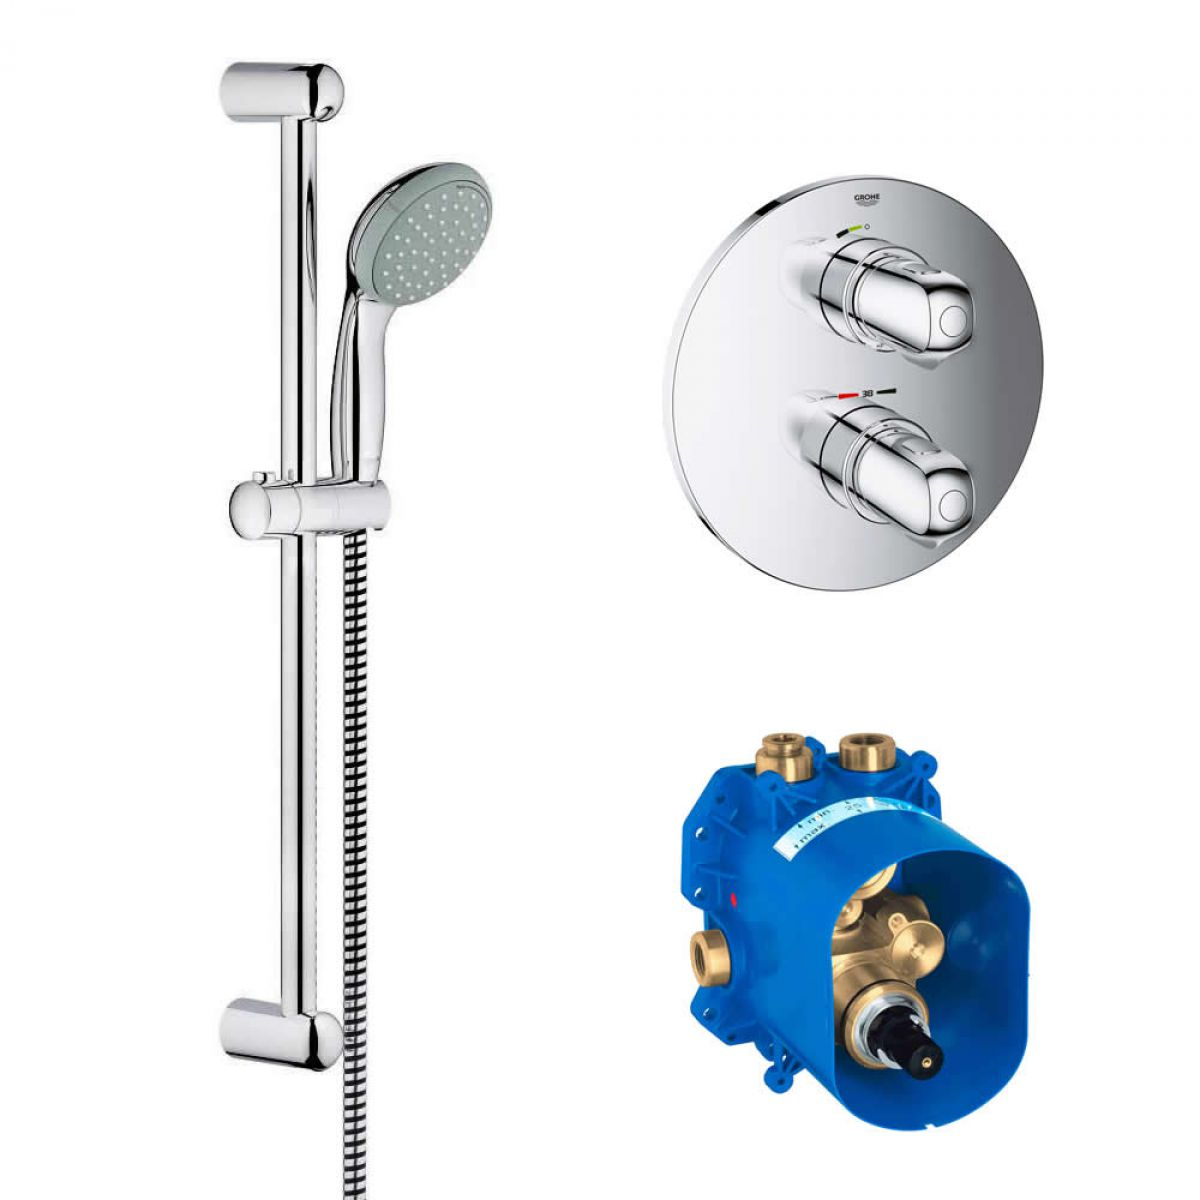 Concealed Shower Room Steam Room Thermostatic Valve: Grohe Grohtherm 1000 Shower Set With Concealed